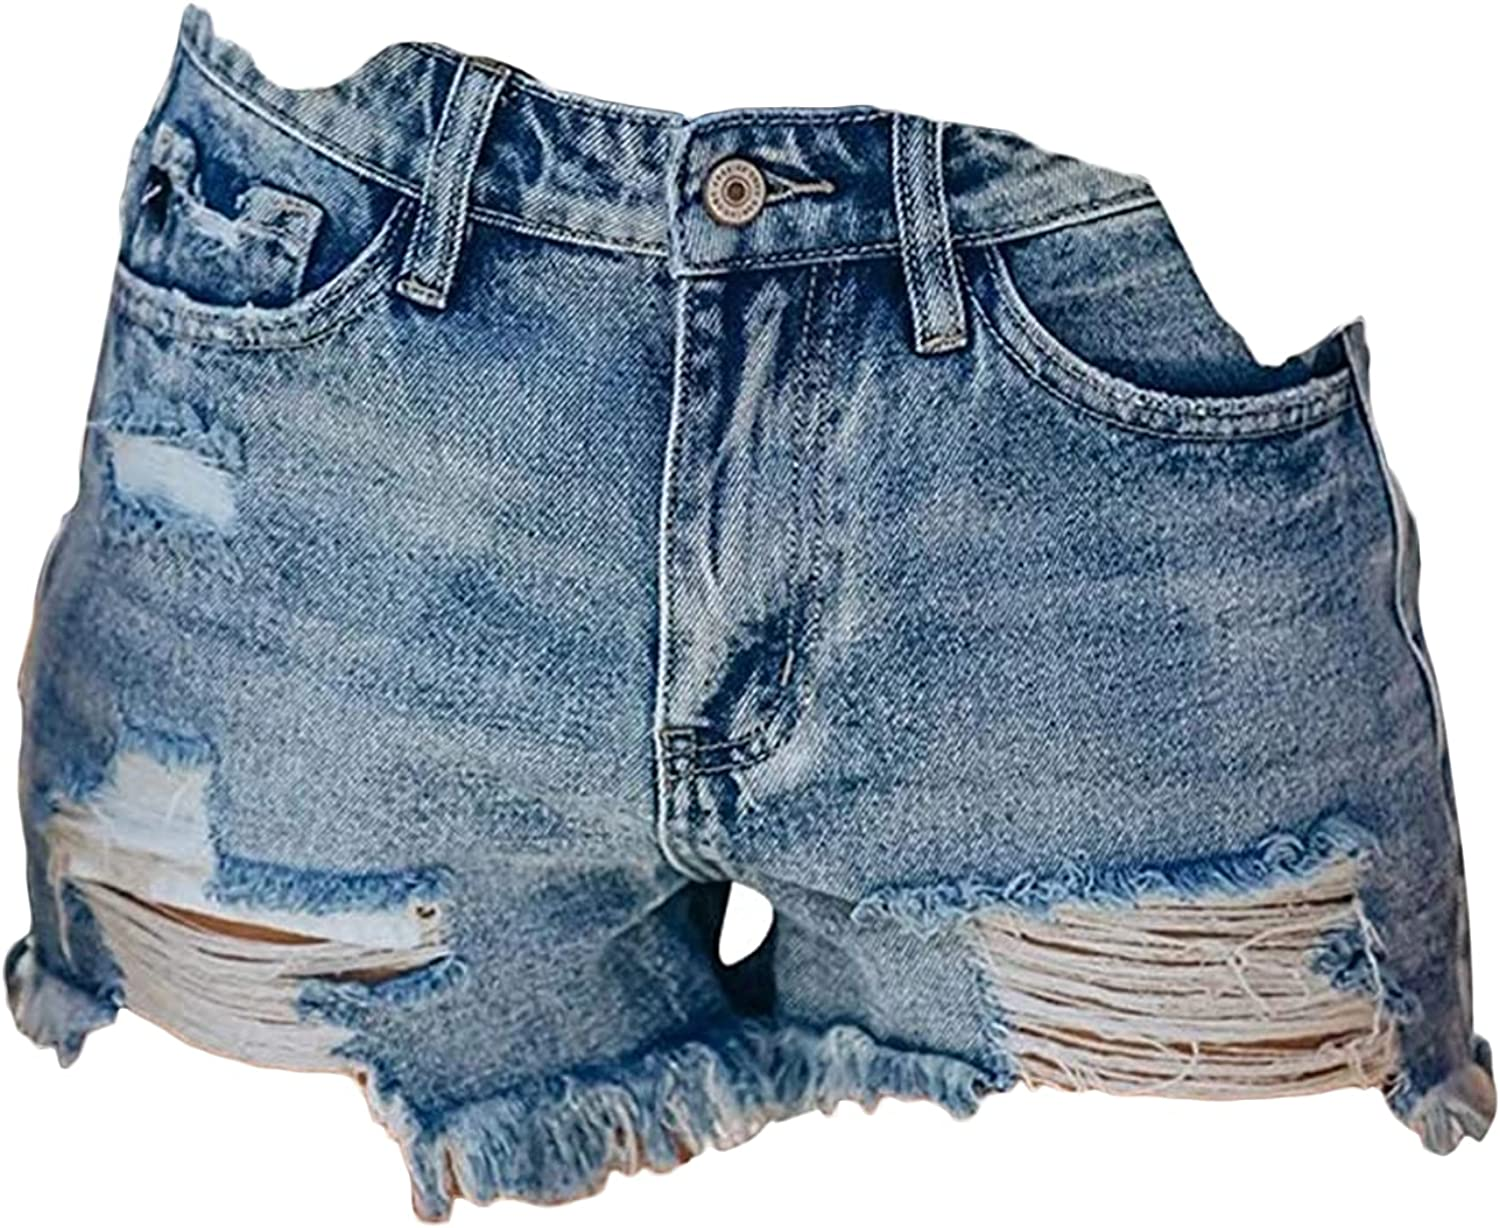 Women's Fringed Denim Shorts Cut Ripped Frayed Hem Jeans Short Distressed Wash Button Summer Casual Hot Short Pant